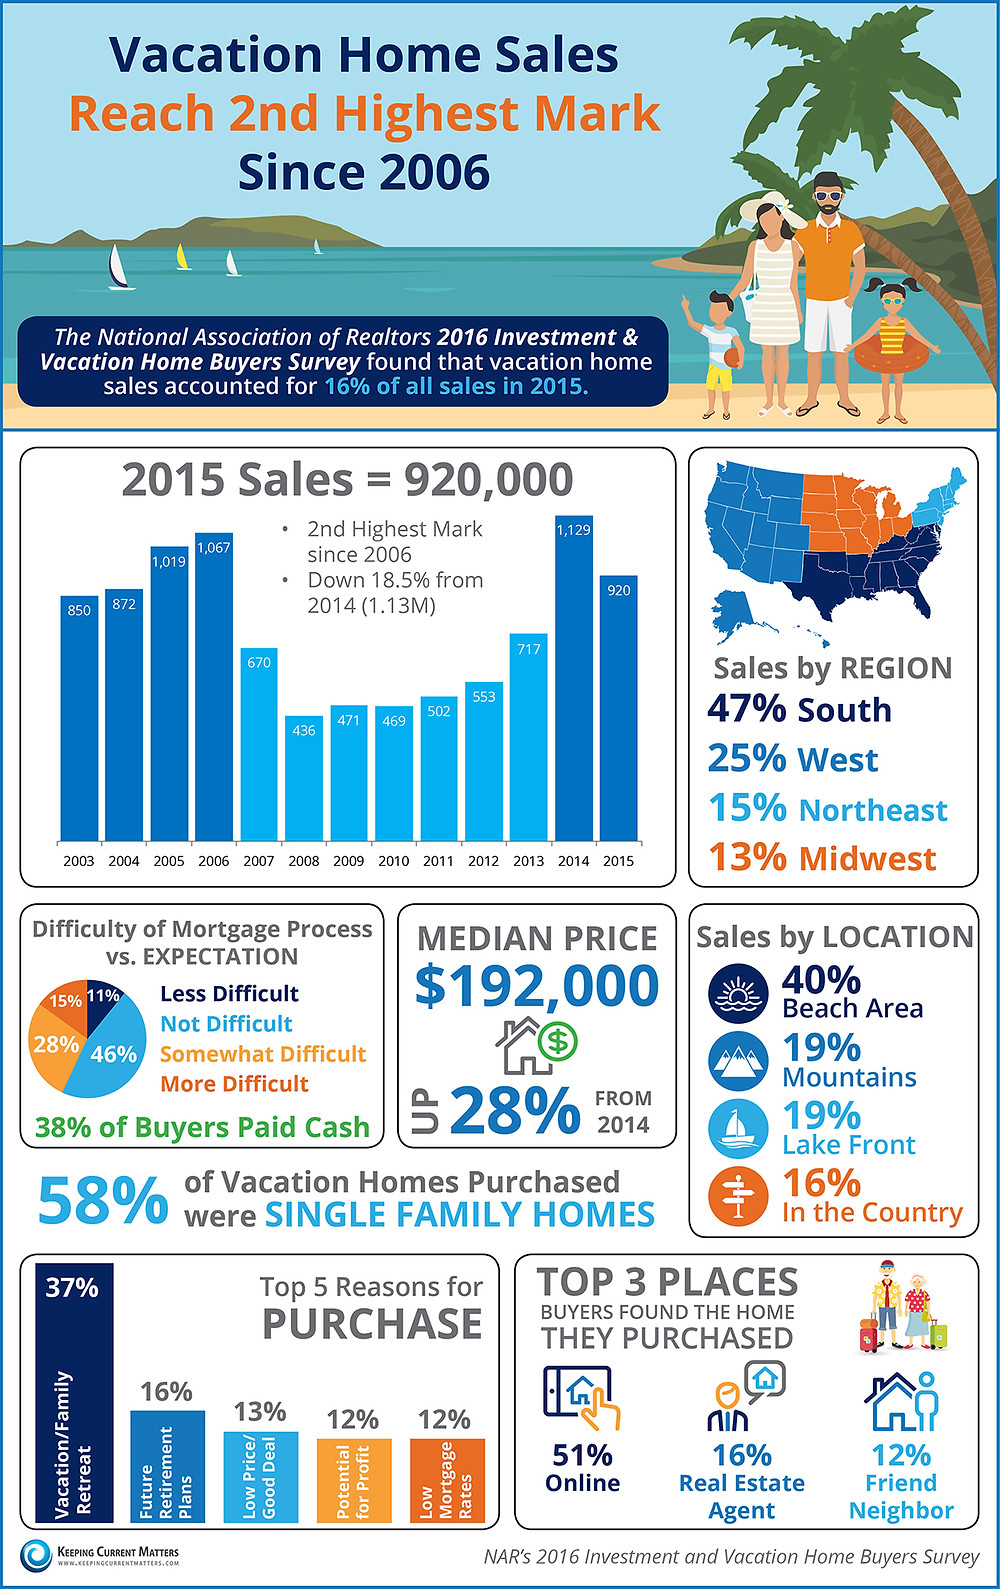 Vacation Home Sales Reach 2nd Highest Mark Since 2006 [INFOGRAPHIC] | Keeping Current Matters